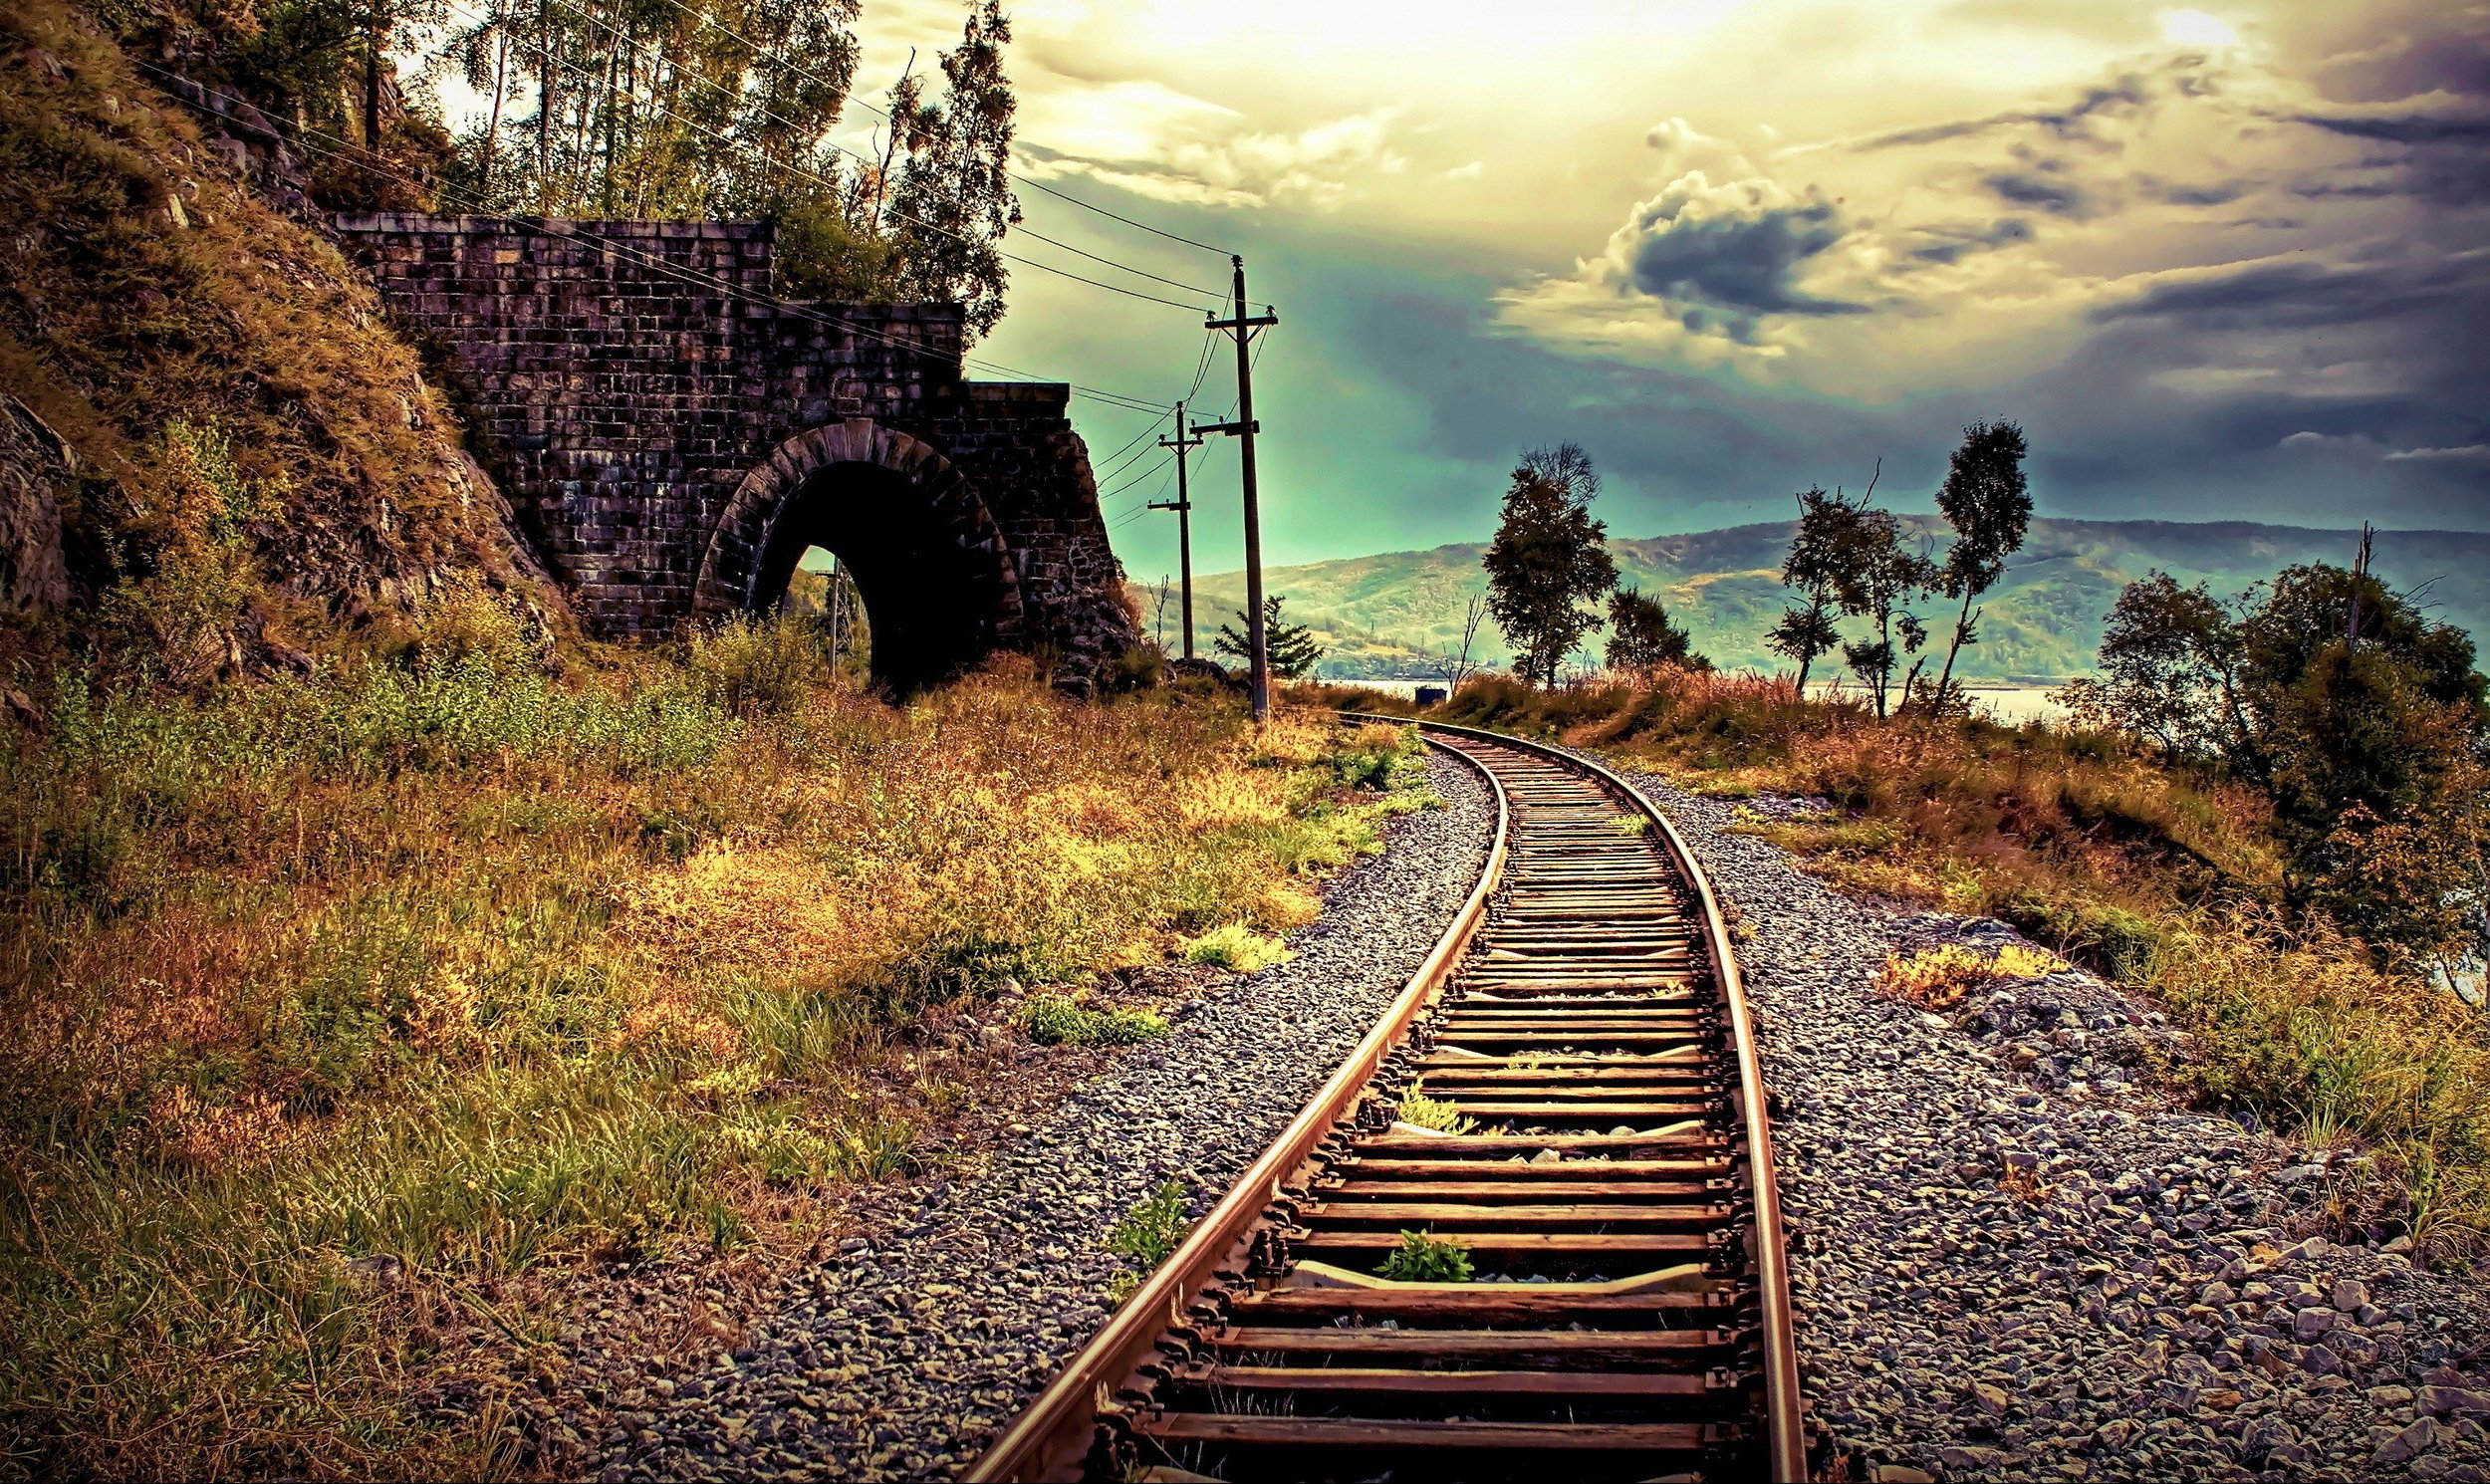 Rail road wallpaper HD   Funny Pictures Gifs Quotes Images Photos 2500x1490